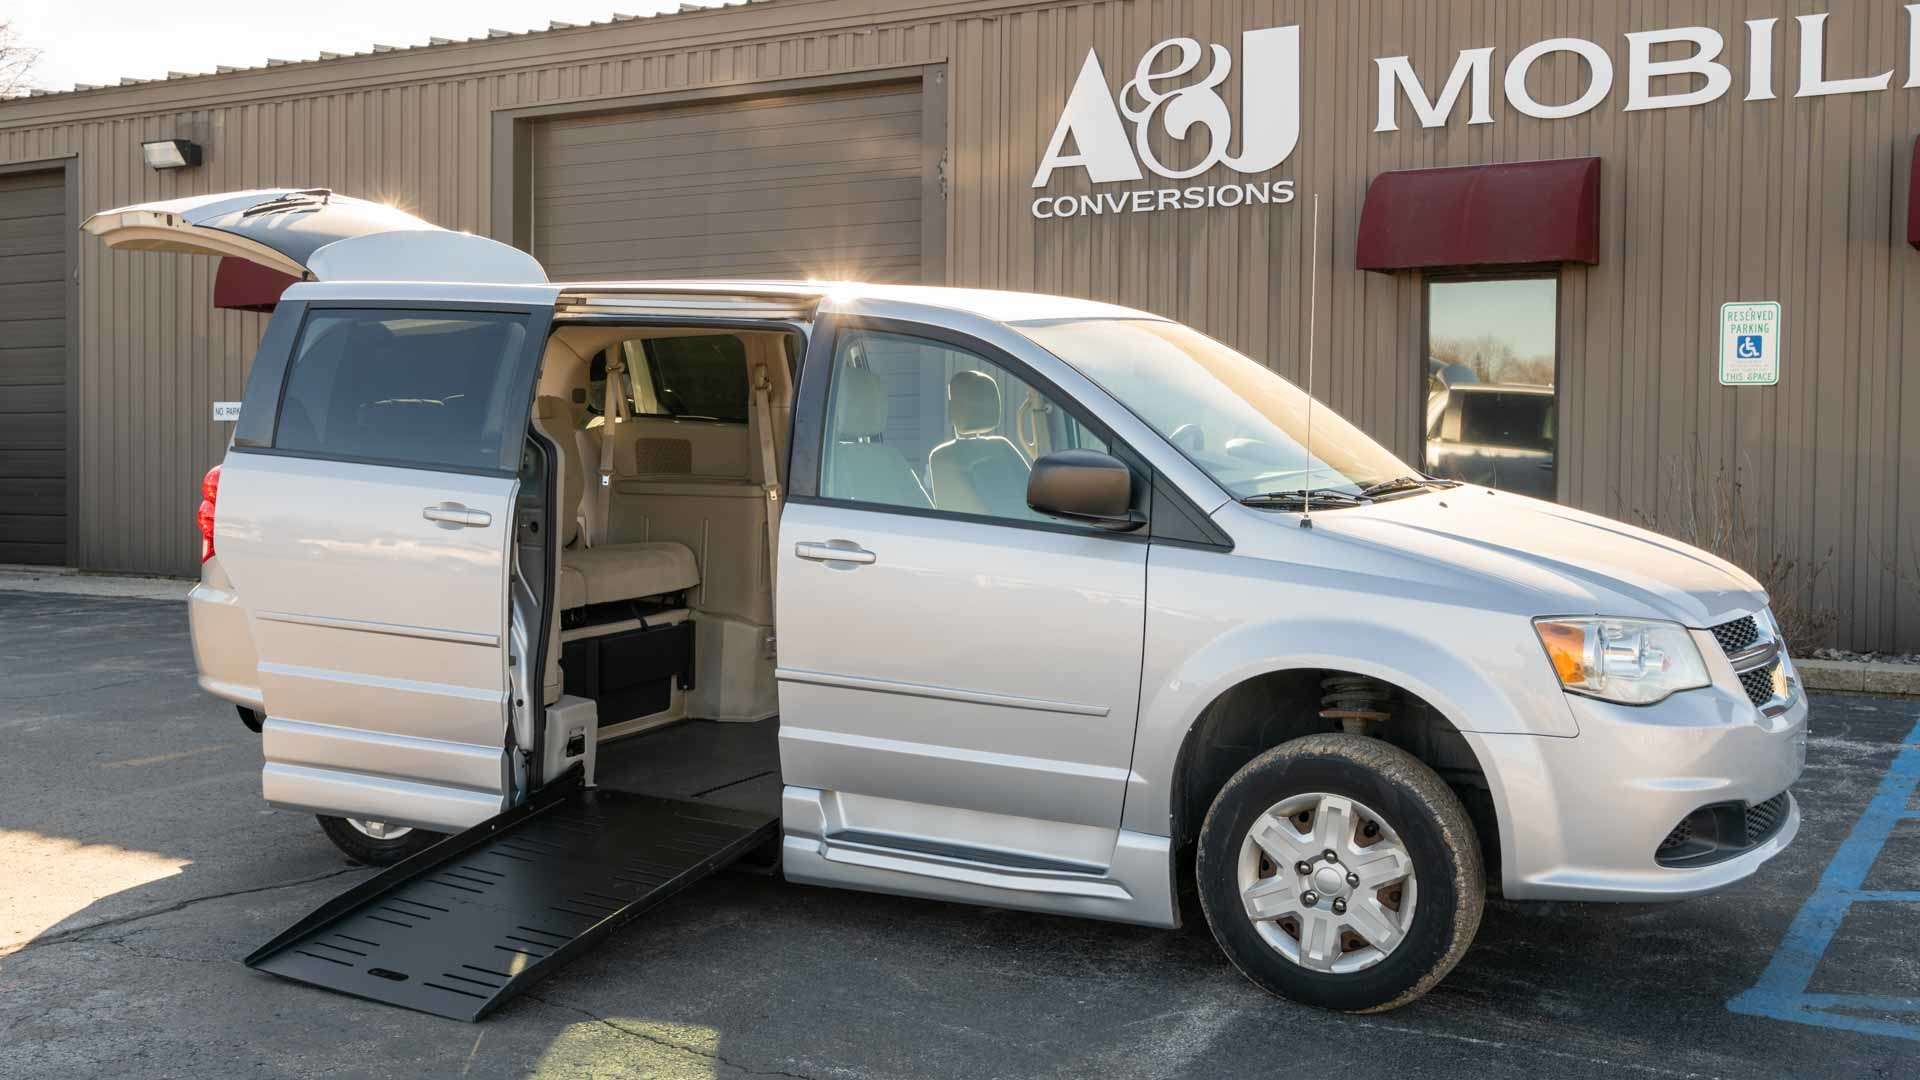 2012 Dodge Grand Caravan | Conversion: Commercial Vans Dodge ADA Entervan